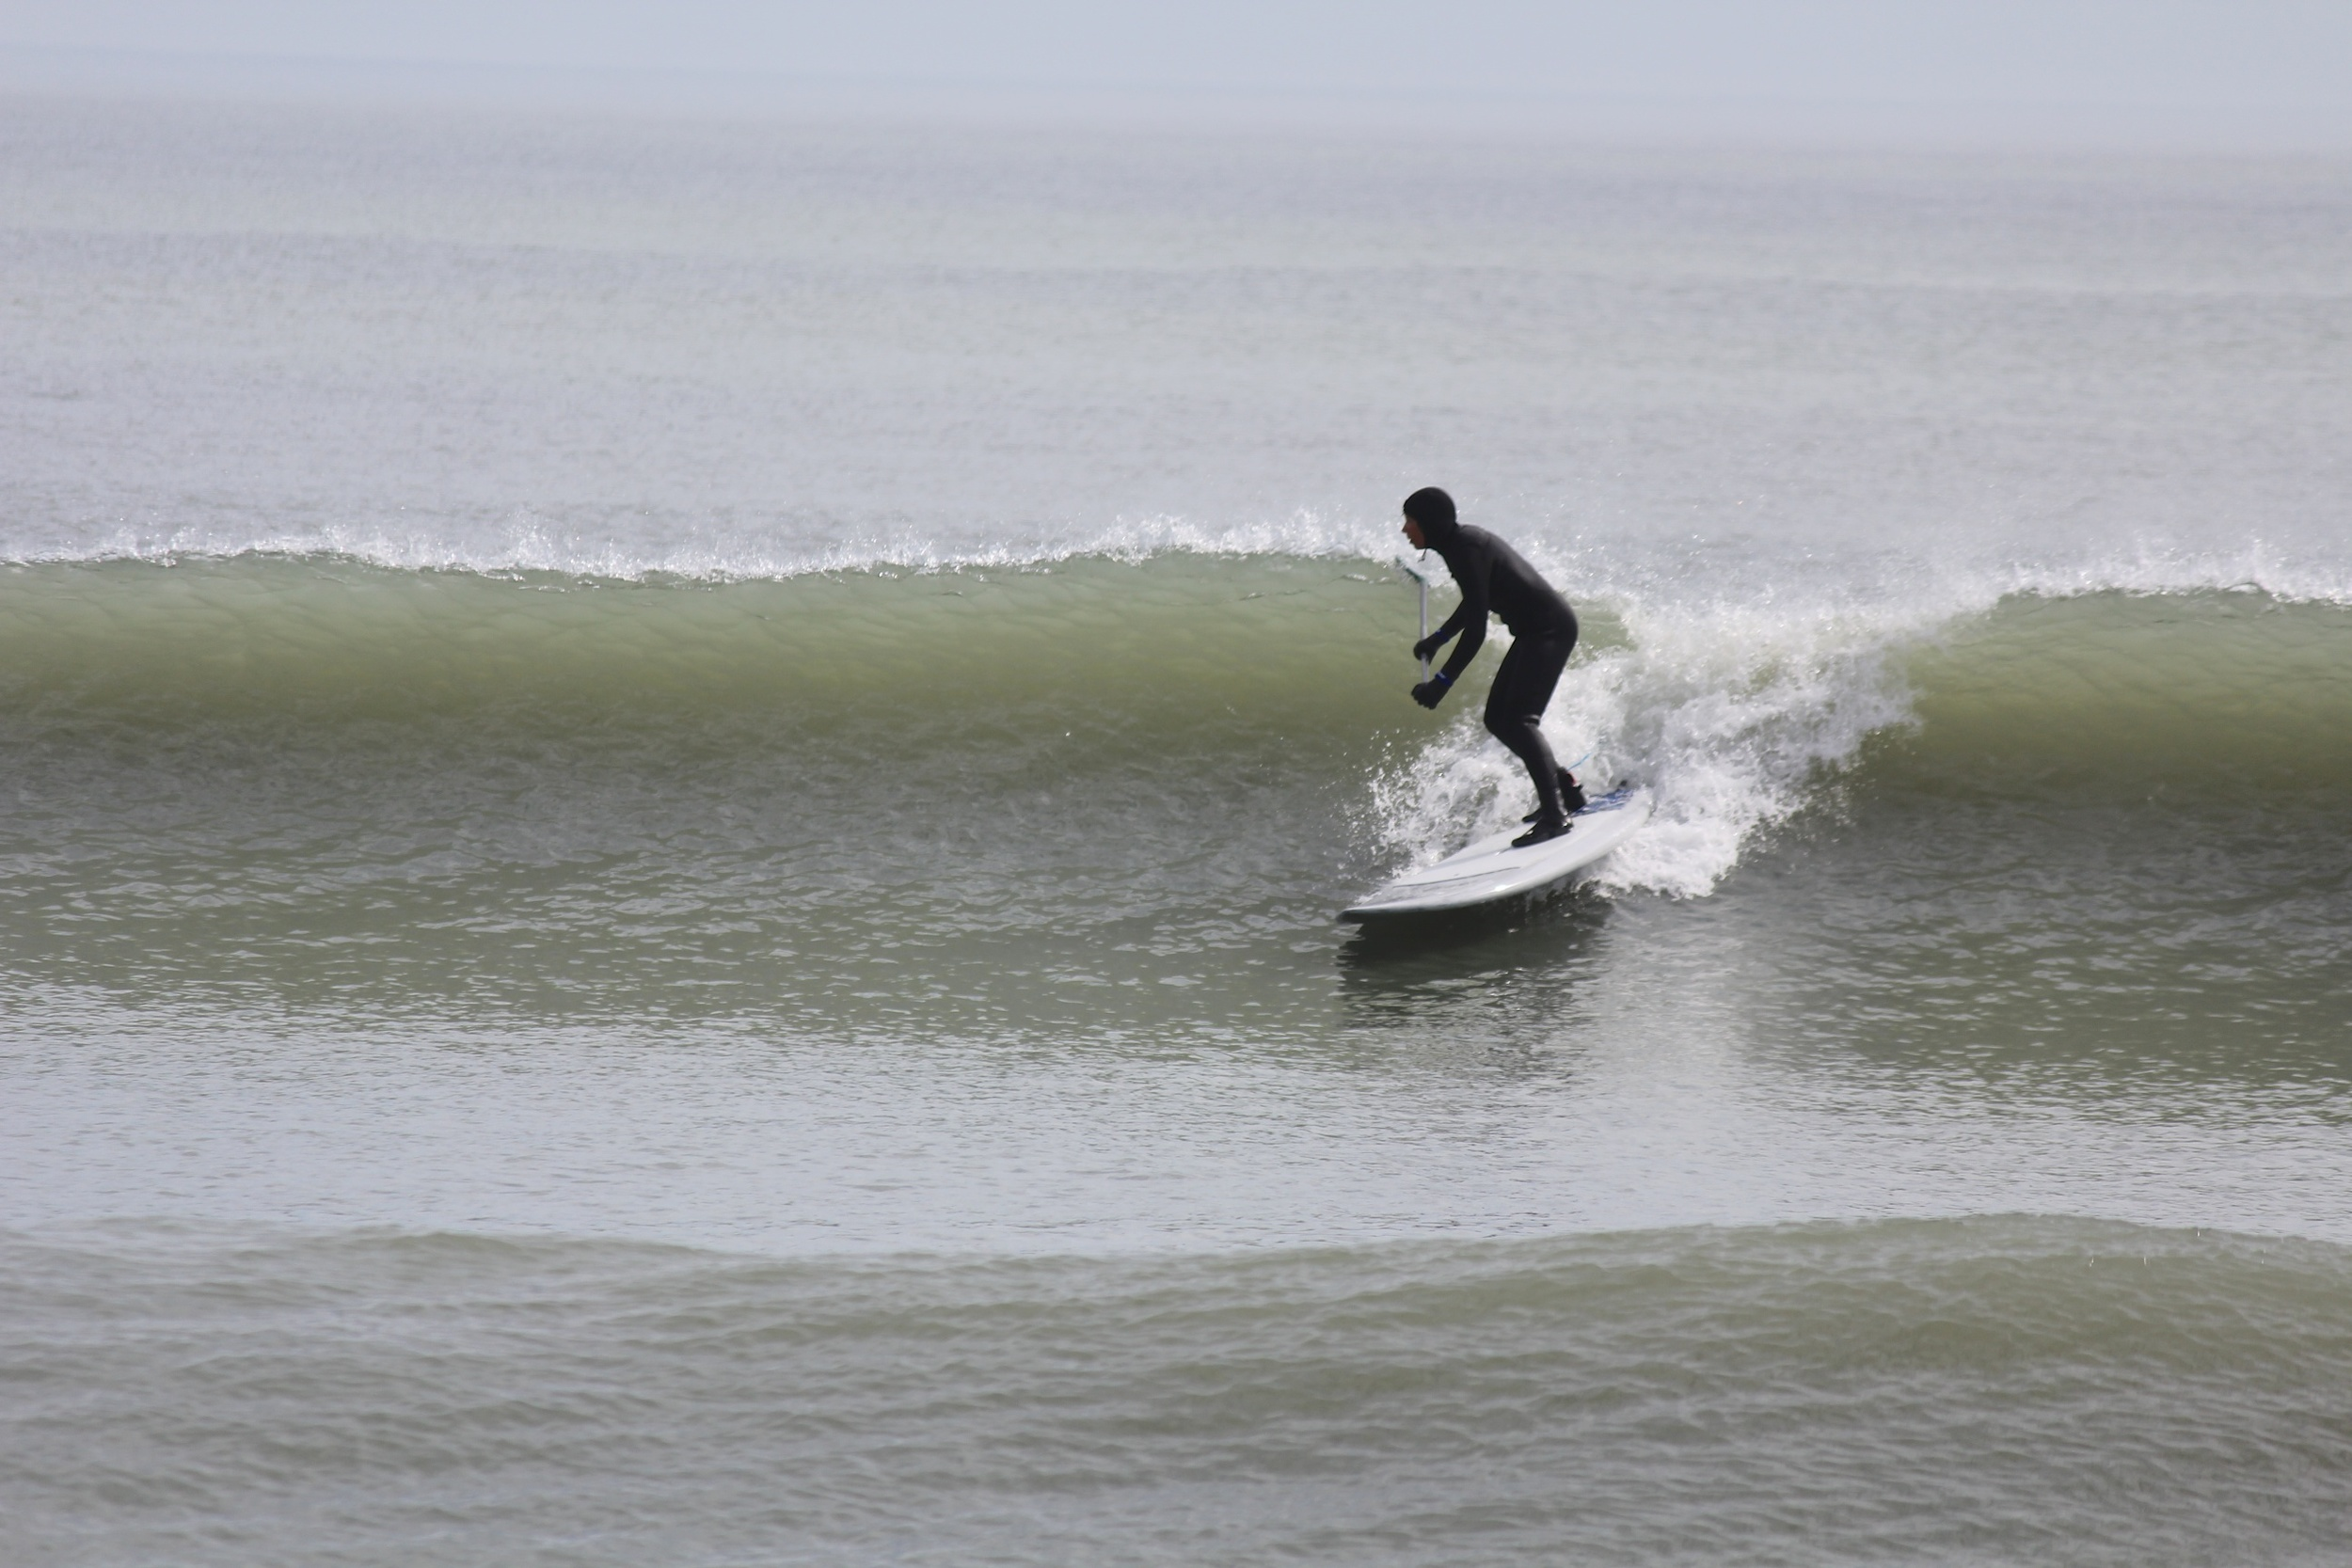 Jacky was a surf machine today. On the water longer than anyone, getting tons of perfect waves